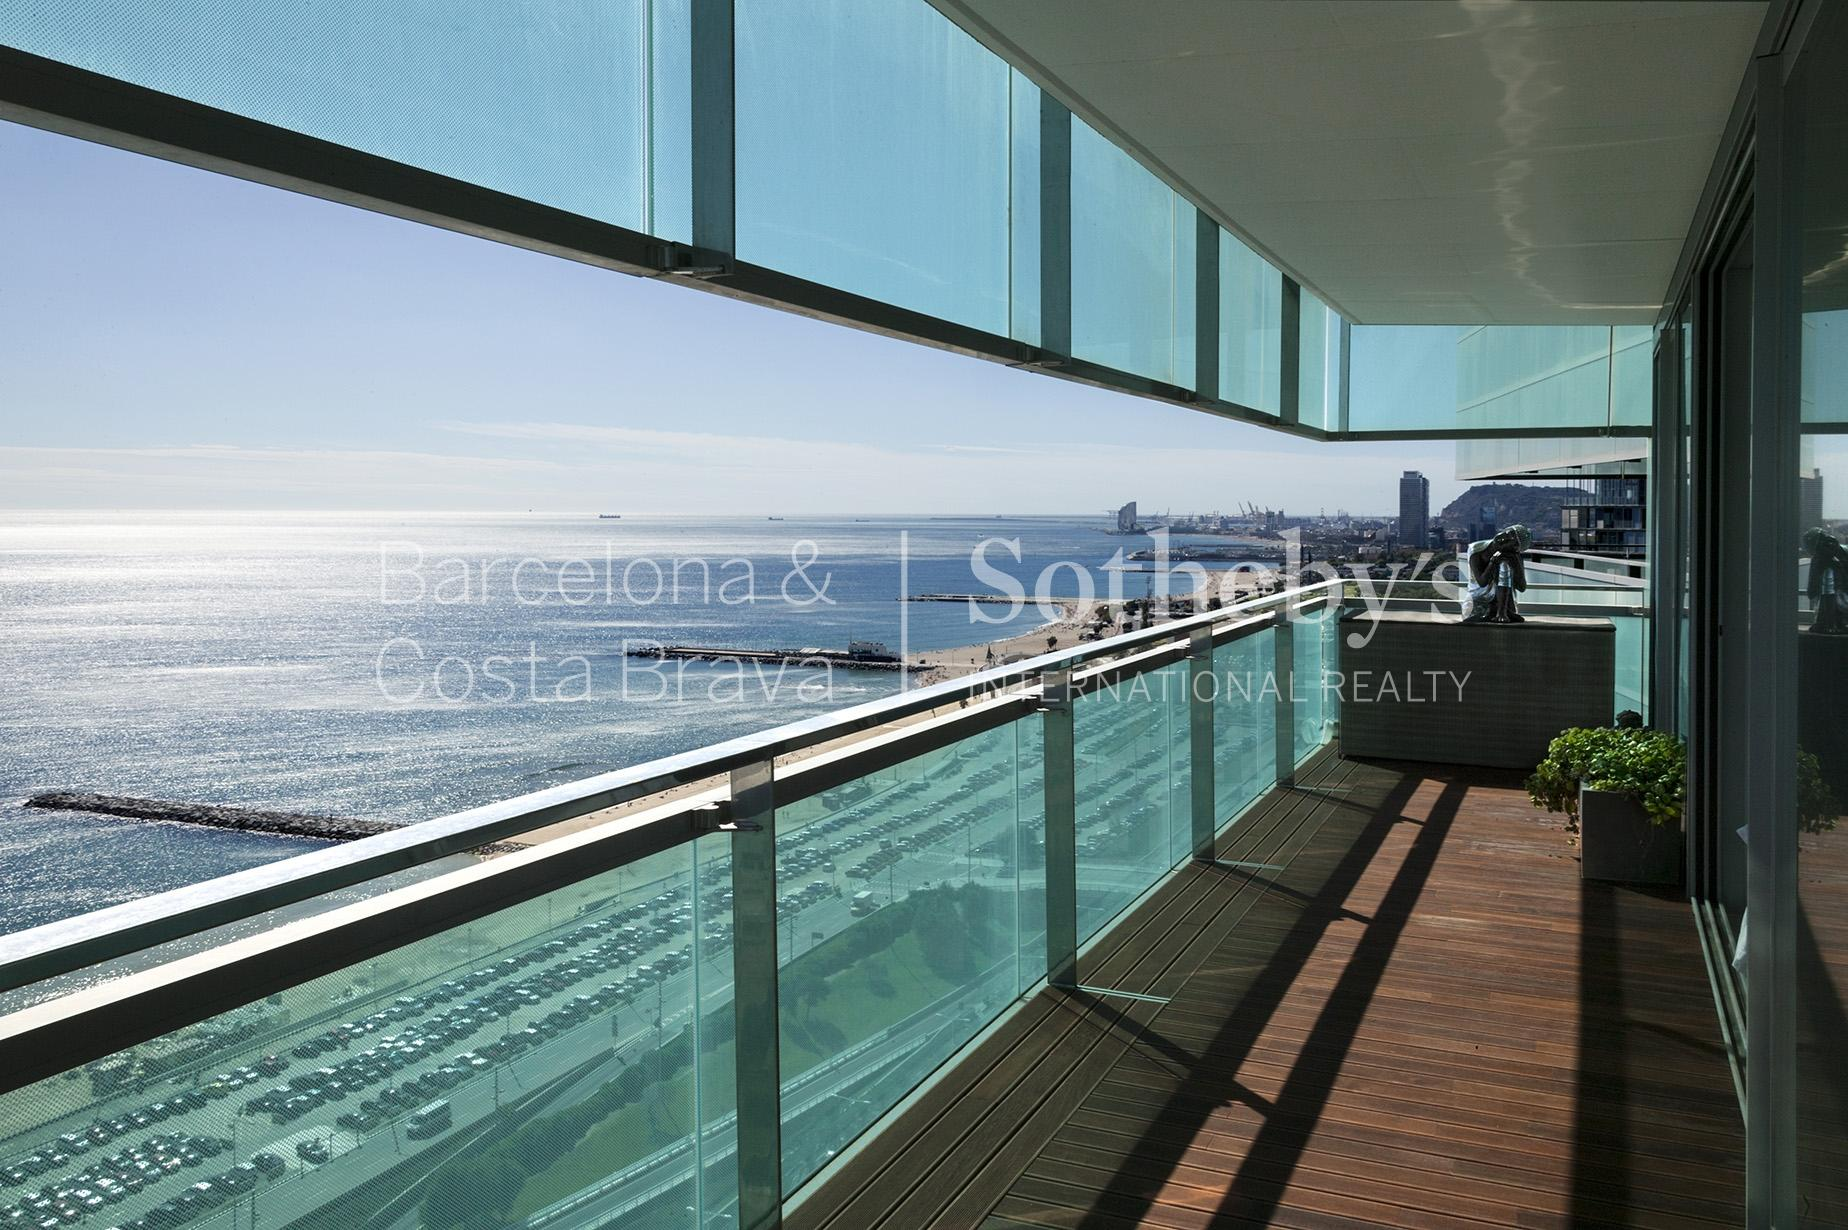 Appartement pour l Vente à Exclusive Seafront Apartment with excellent views to the sea and the city of ... Diagonal Mar, Barcelona City, Barcelona 08019 Espagne